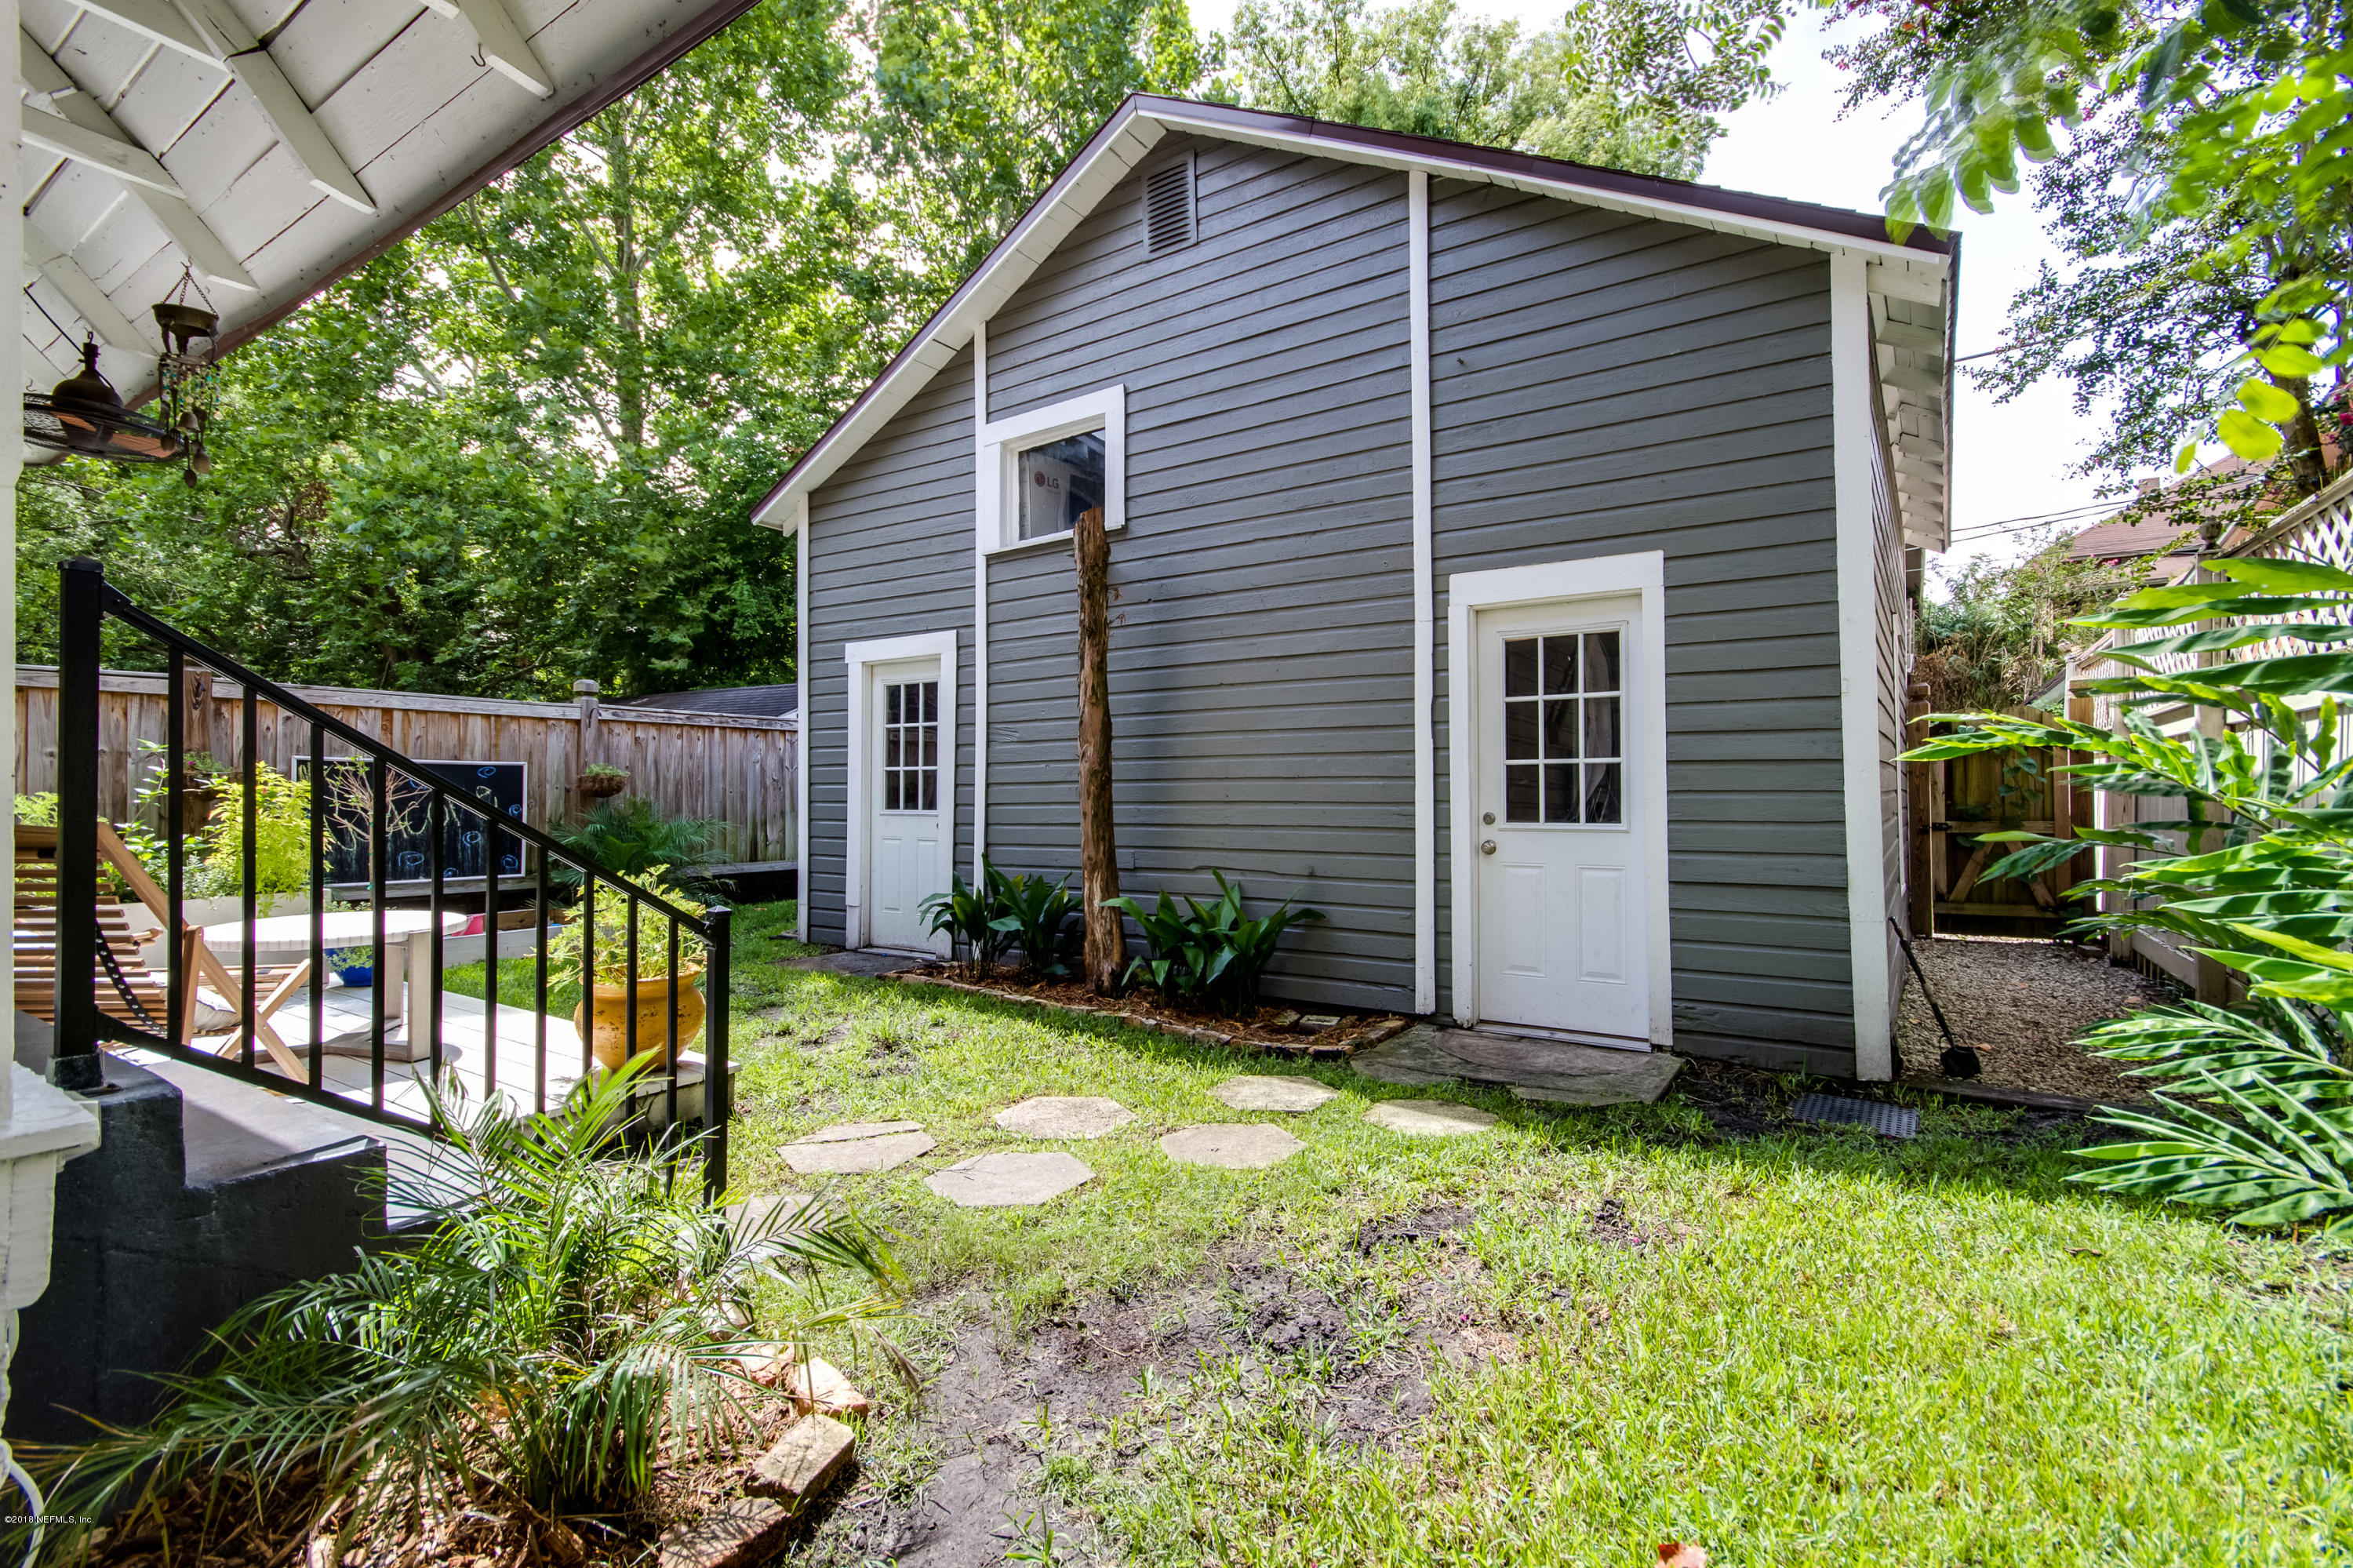 2260 POST, JACKSONVILLE, FLORIDA 32204, 3 Bedrooms Bedrooms, ,2 BathroomsBathrooms,Residential - single family,For sale,POST,948596